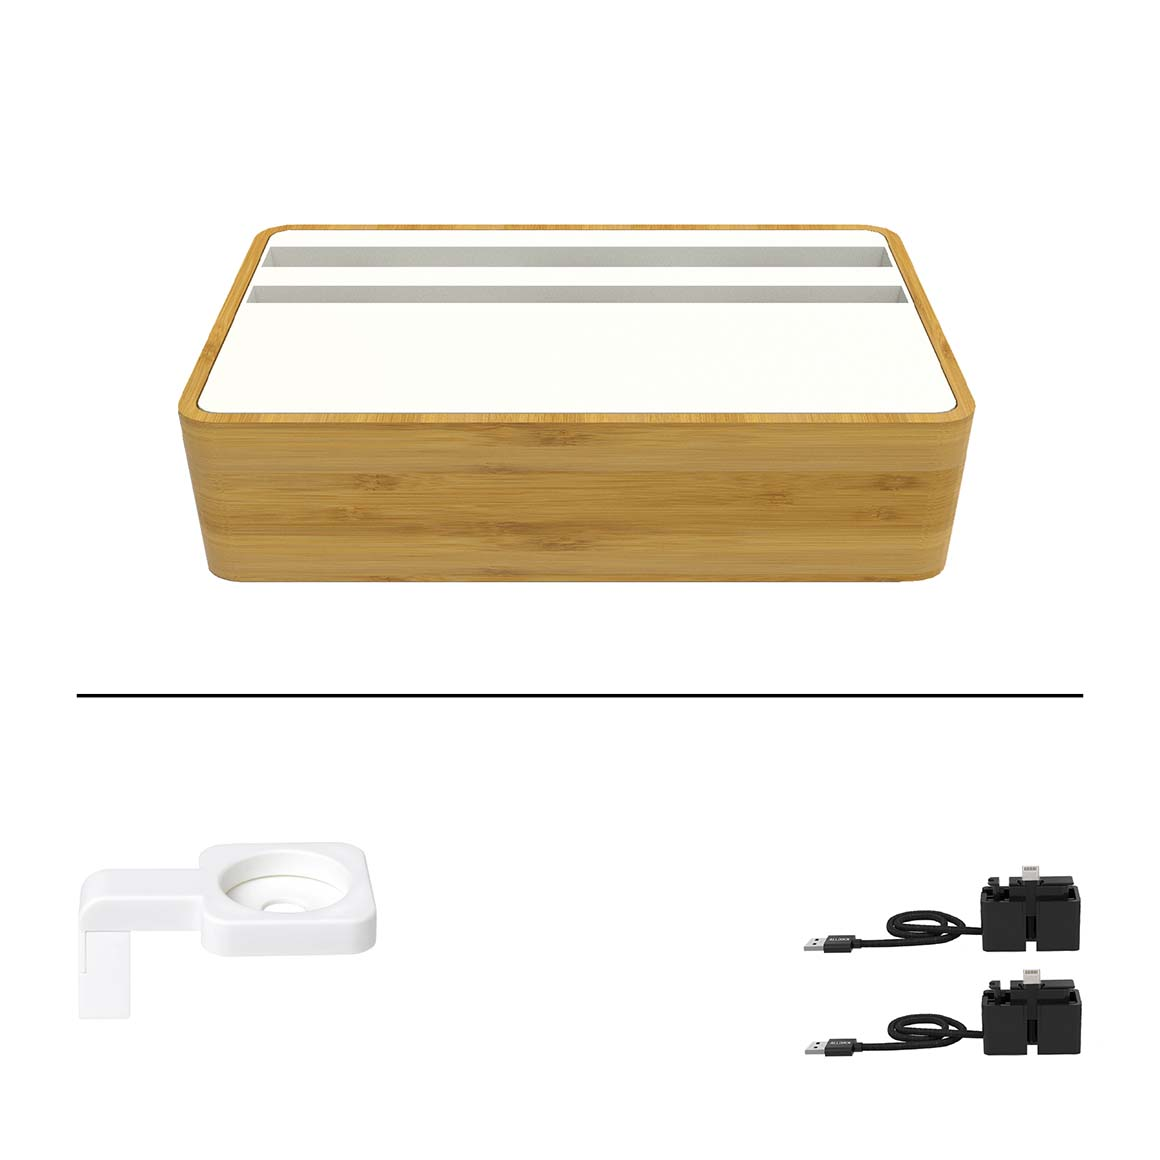 ALLDOCK - Medium Apple Package - HybridX Compact Bamboo/White + 2x MFi Cable + White Apple Watch Mount   Trada Marketplace